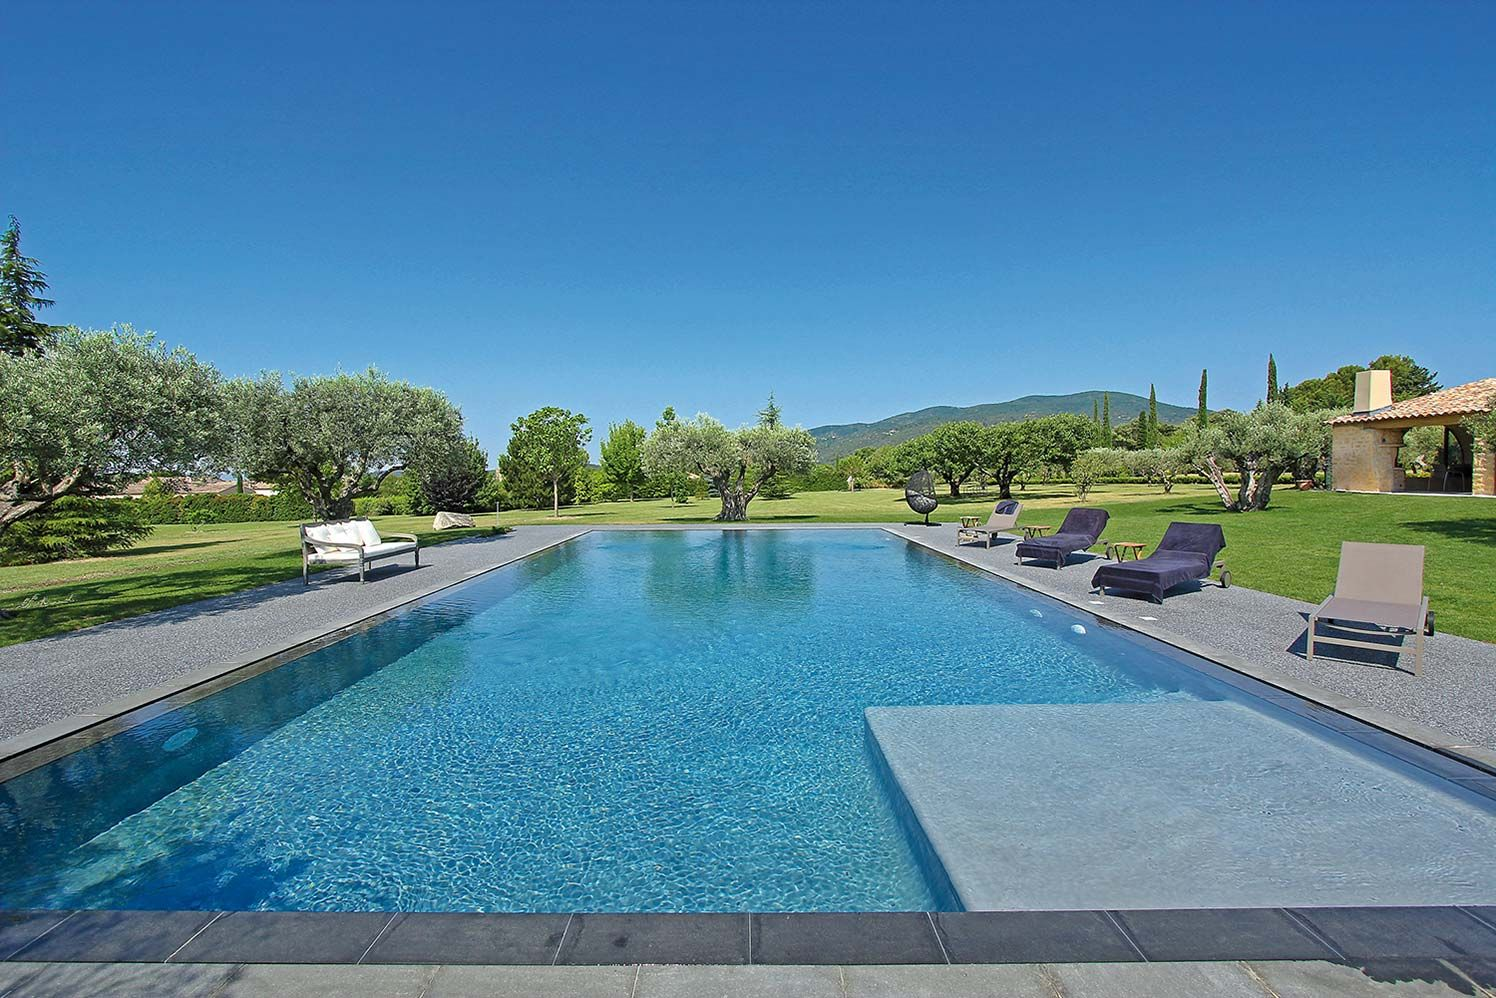 La piscine petite note contemporaine provence and for Piscine miroir bali